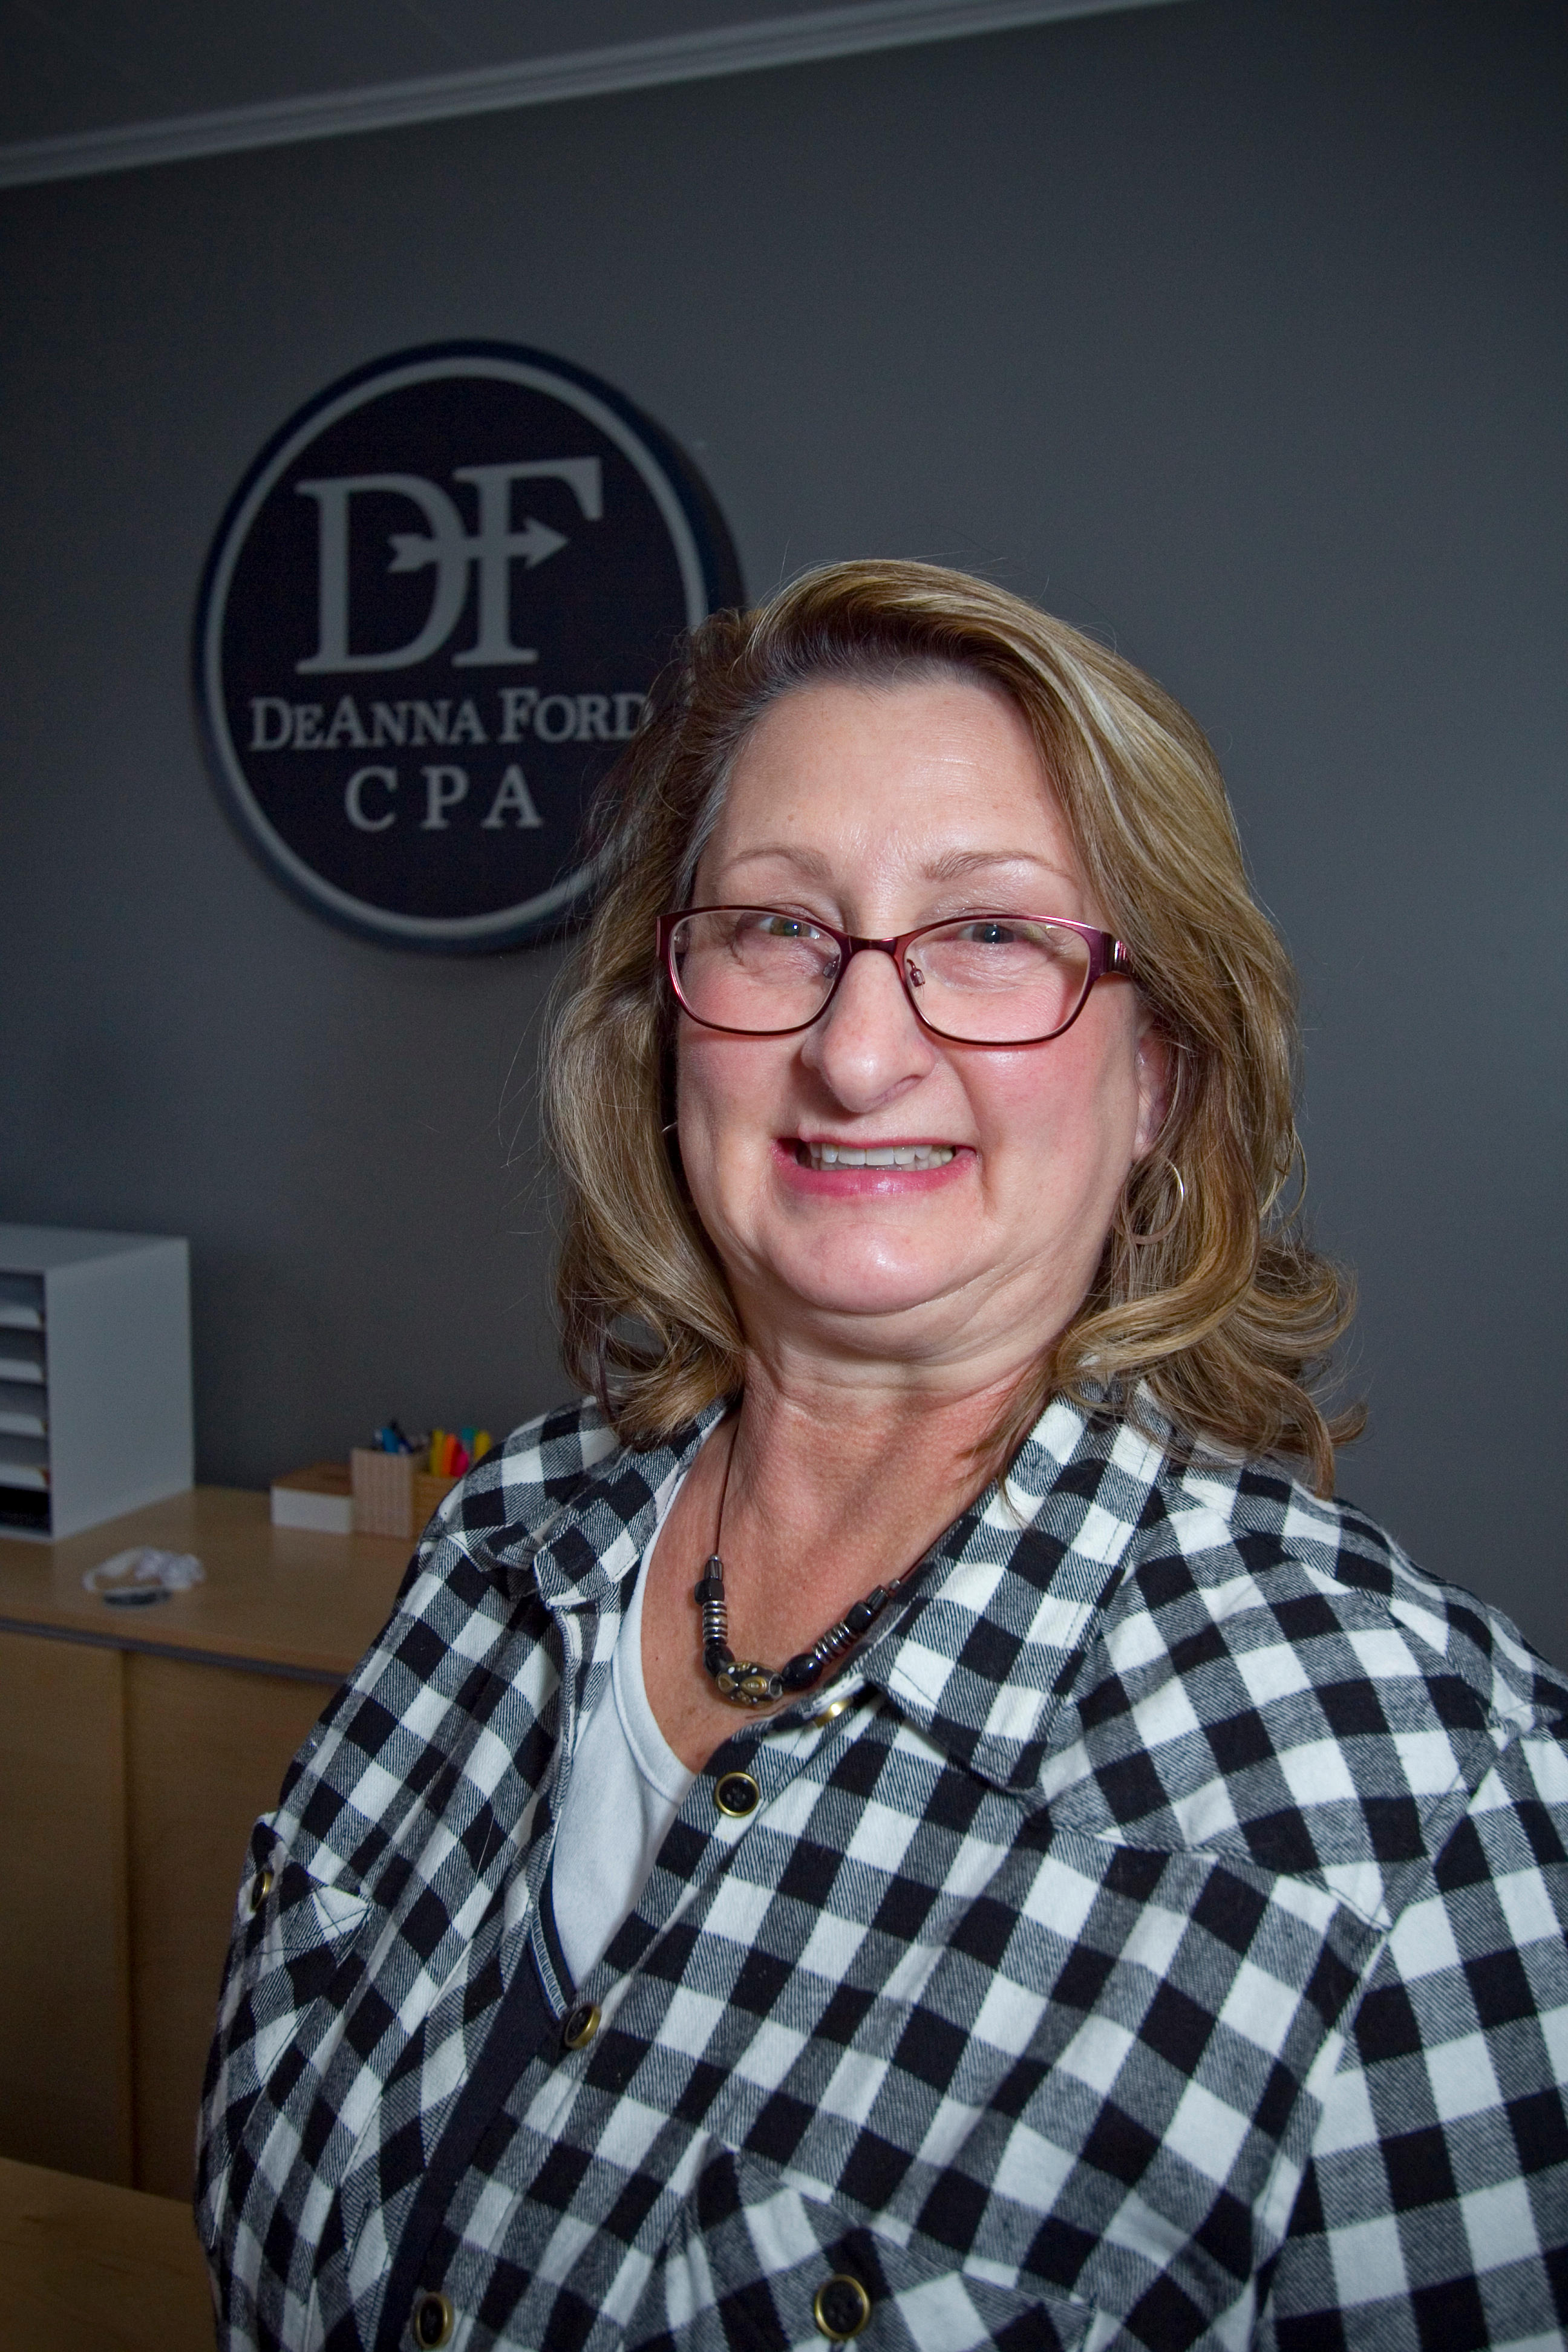 DeAnna Ford, CPA image 6